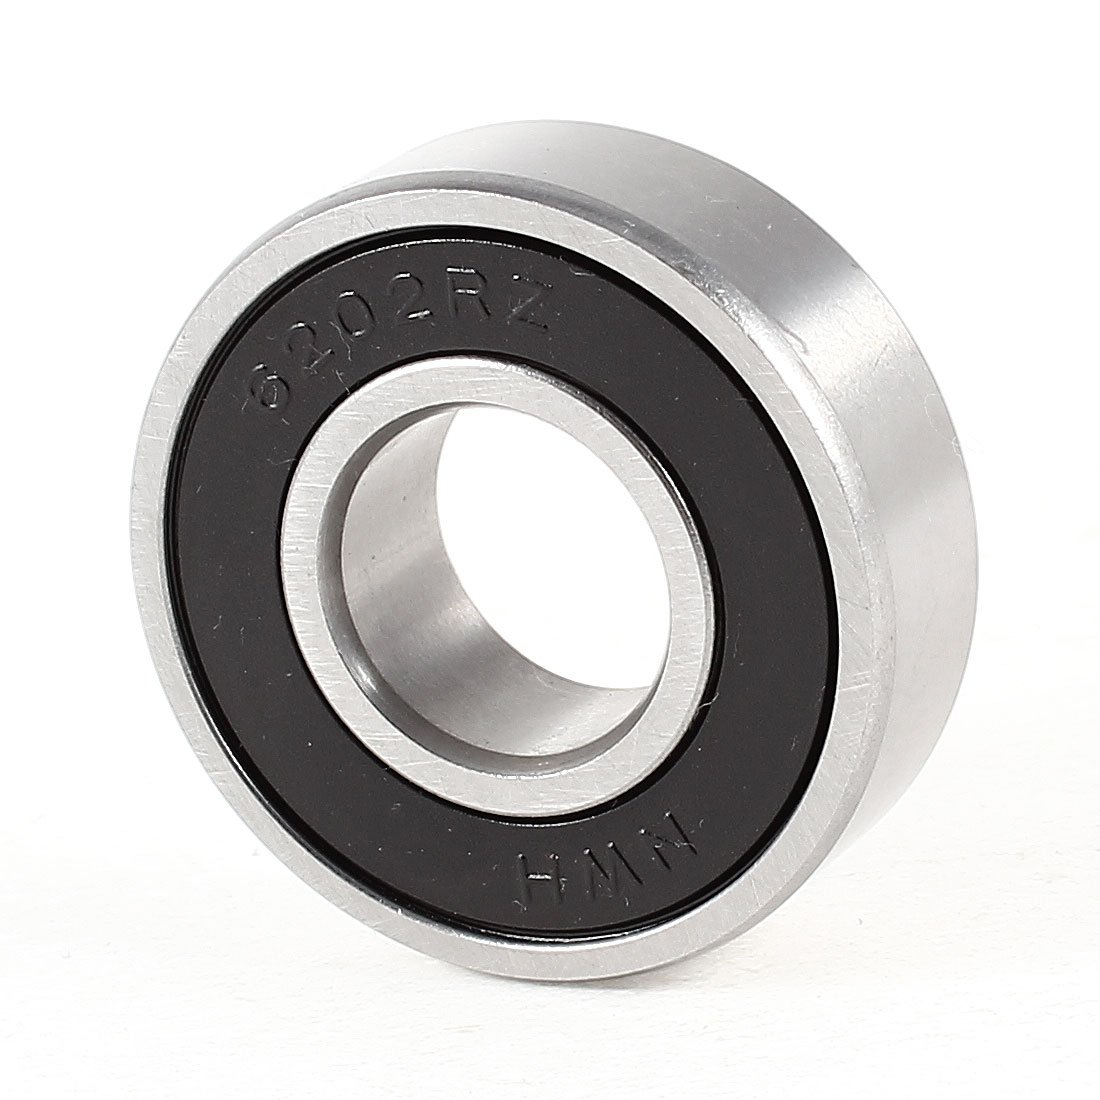 Uxcell a14032000ux0028 Replacement 6202RZ Roller-Skating Deep Groove Ball.. New